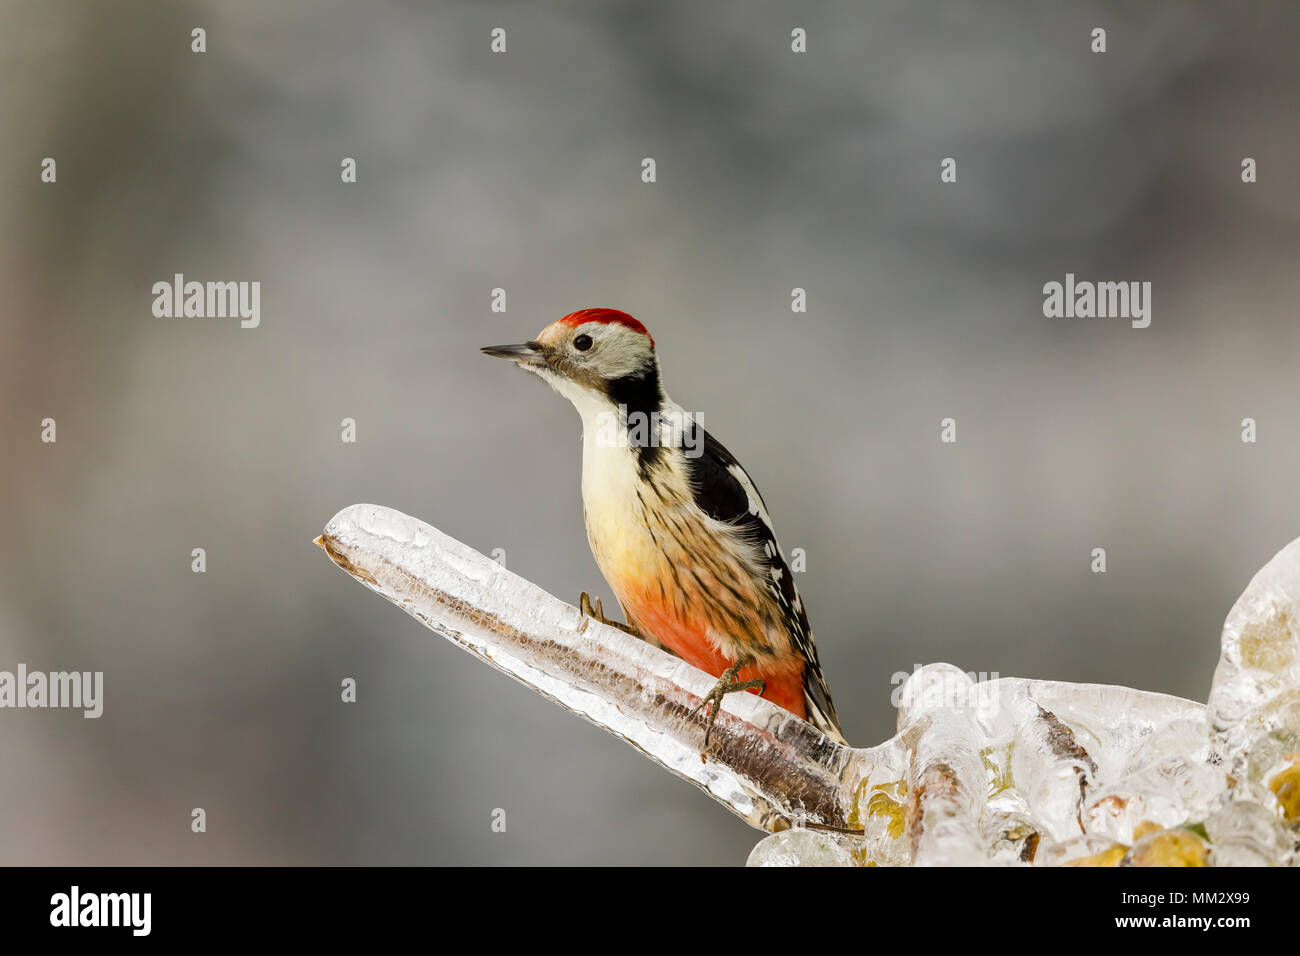 Middle spotted woodpecker (Dendrocoptes medius) male perched on a branch glazed by ice, Alsace, France Stock Photo